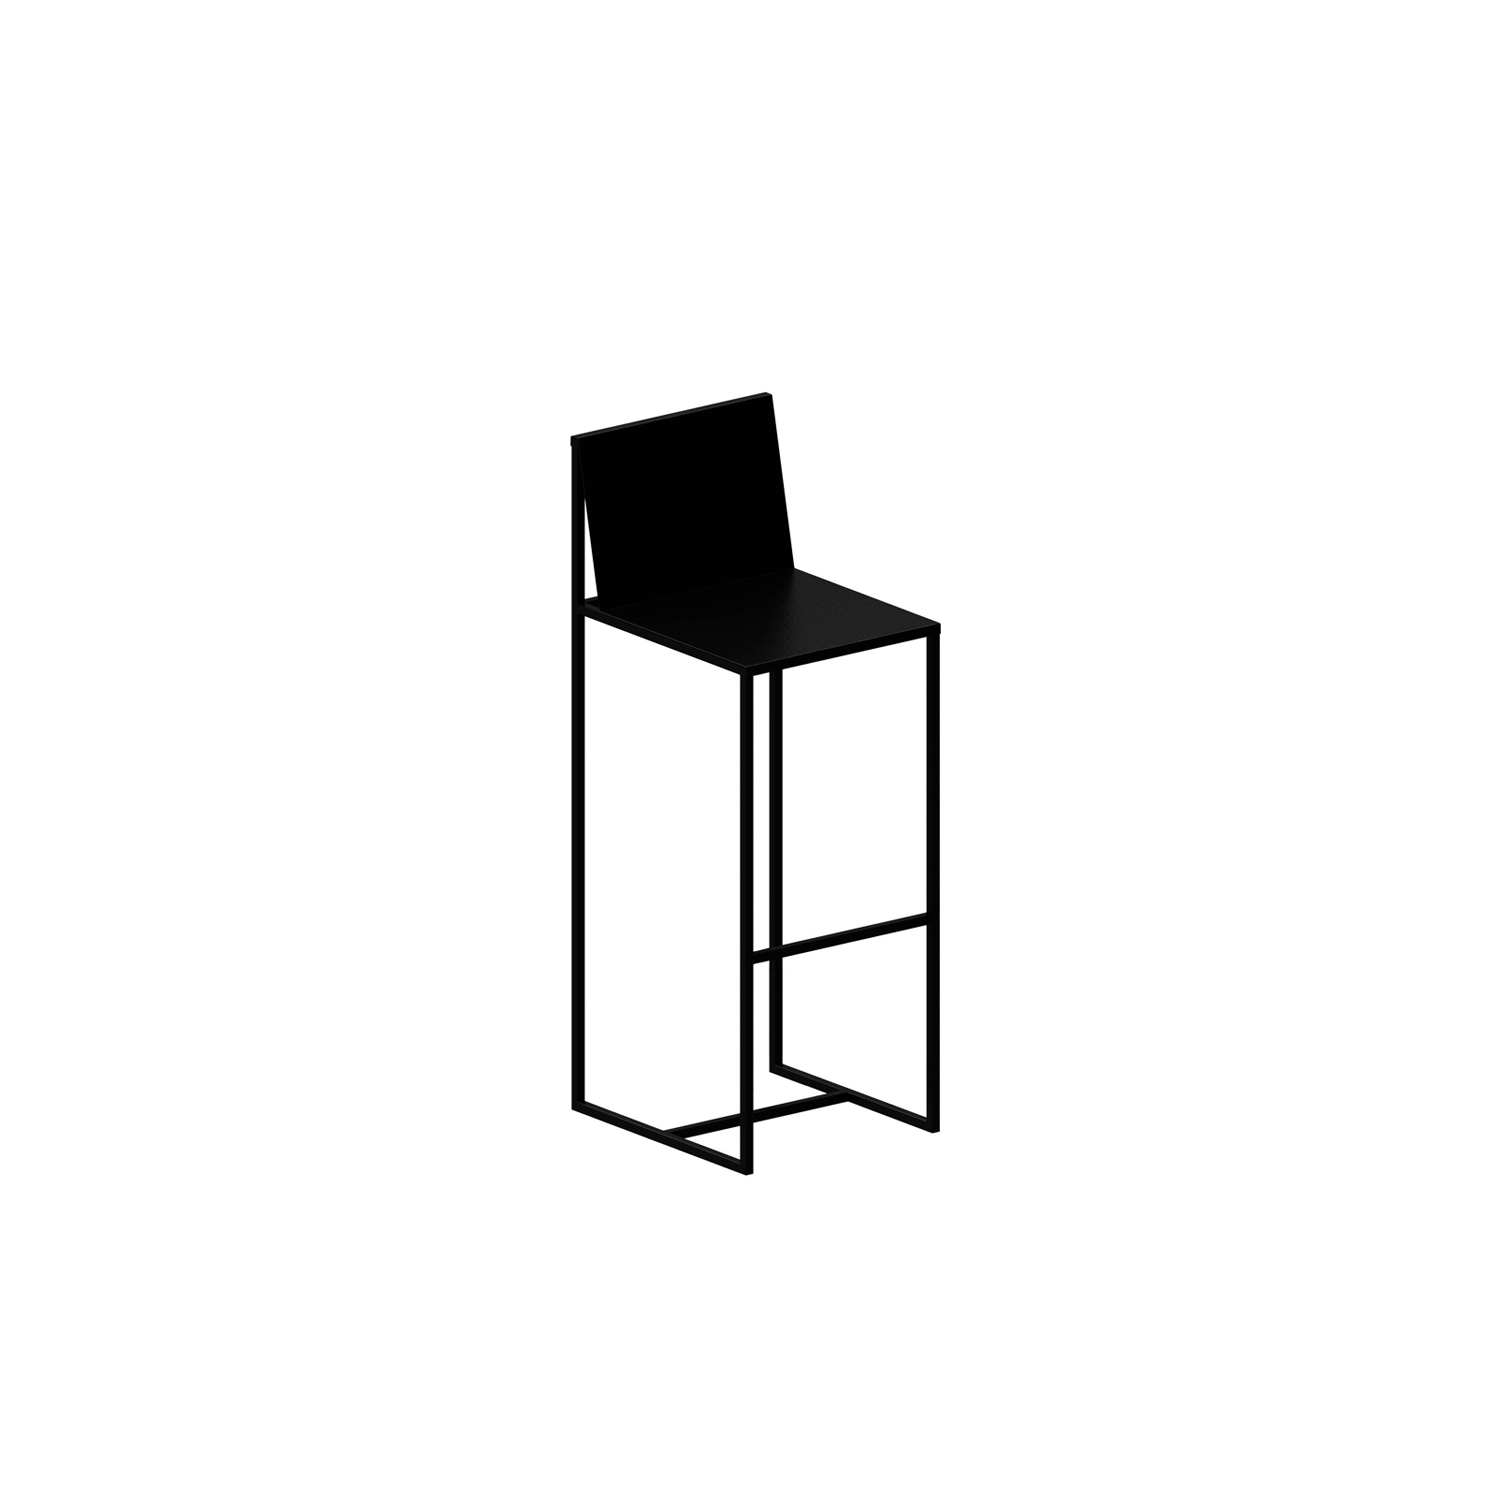 Slim Sissi Barstool - Barstool designed by Maurizio Peregalli and fashioned in Italy. The Slim Sissi Barstool has a linear frame in square Tubular Steel 15x15 mm with a Sheet Steel seat 1 mm thick. Epoxy painted copper black, new version with sand-touch. | Matter of Stuff